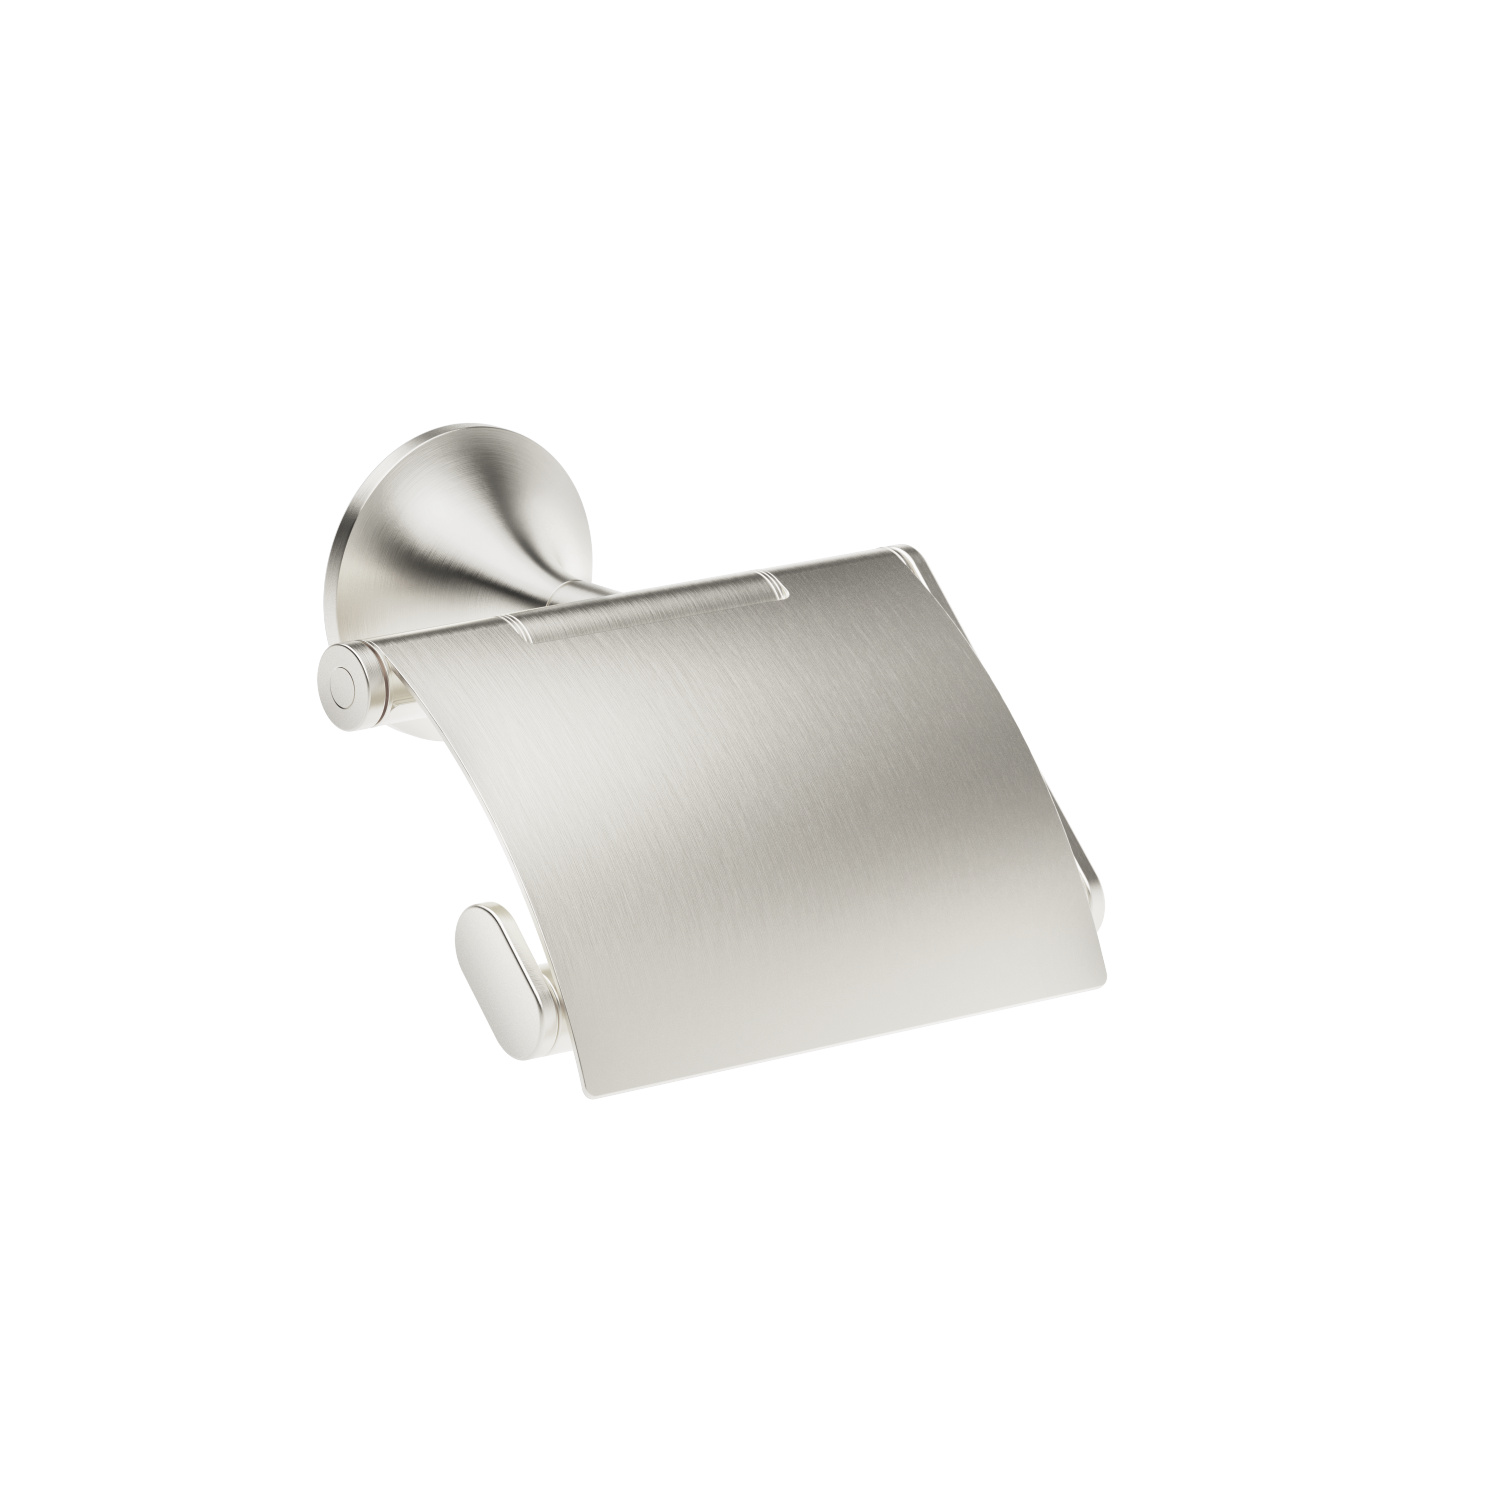 Tissue holder with cover - platinum matte